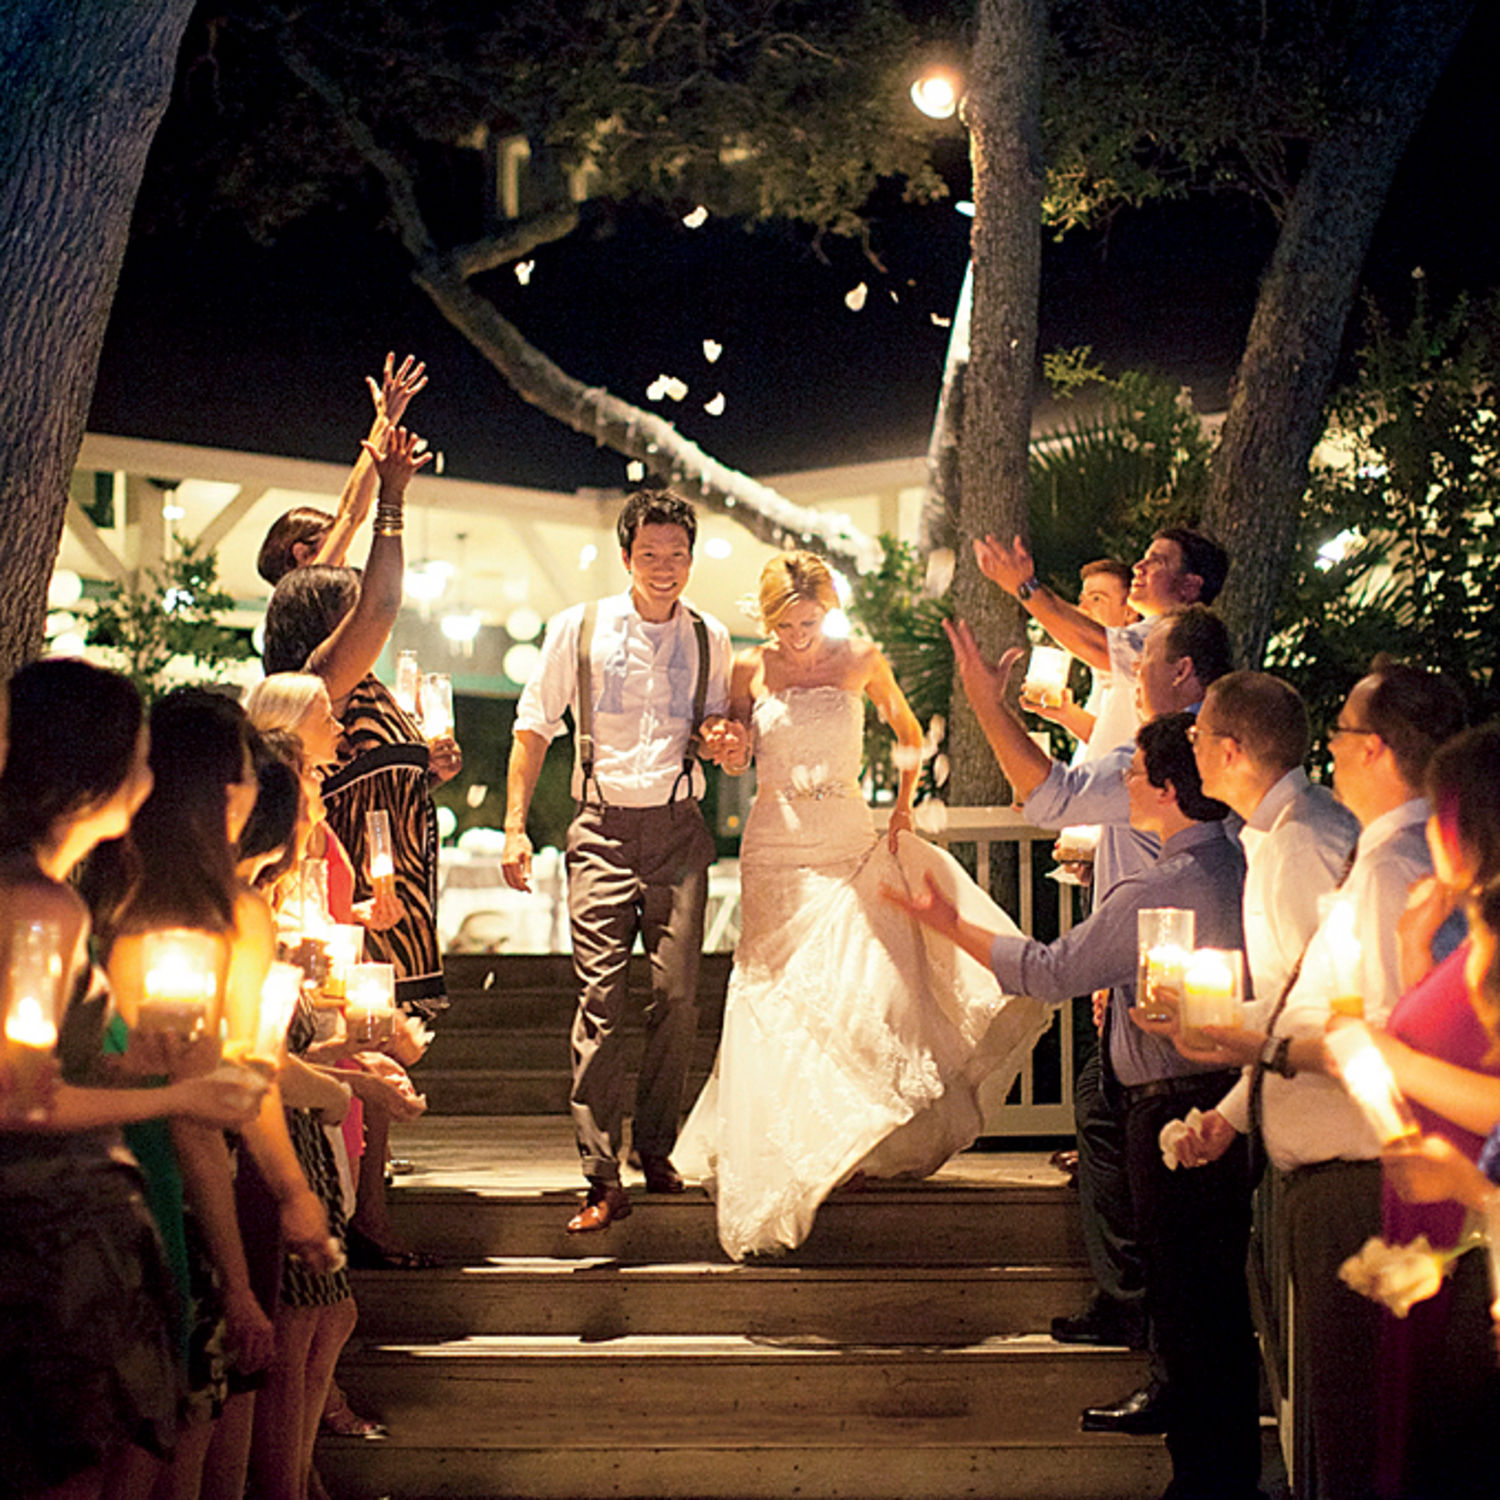 7 awesome ways to exit your wedding wedding send off ideas Photo Courtesy glamour com